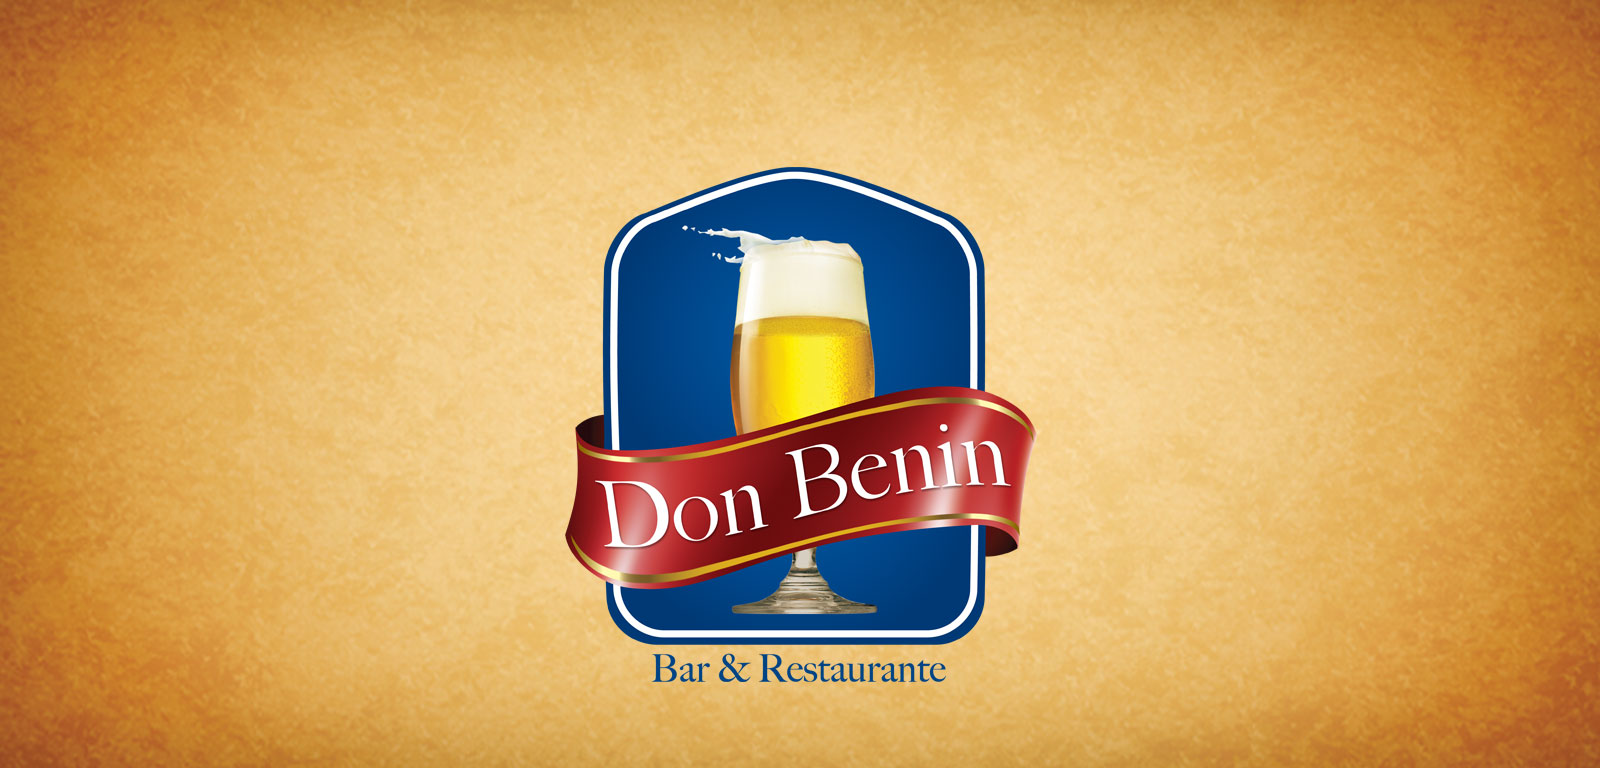 Don Benin Bar e Restaurante